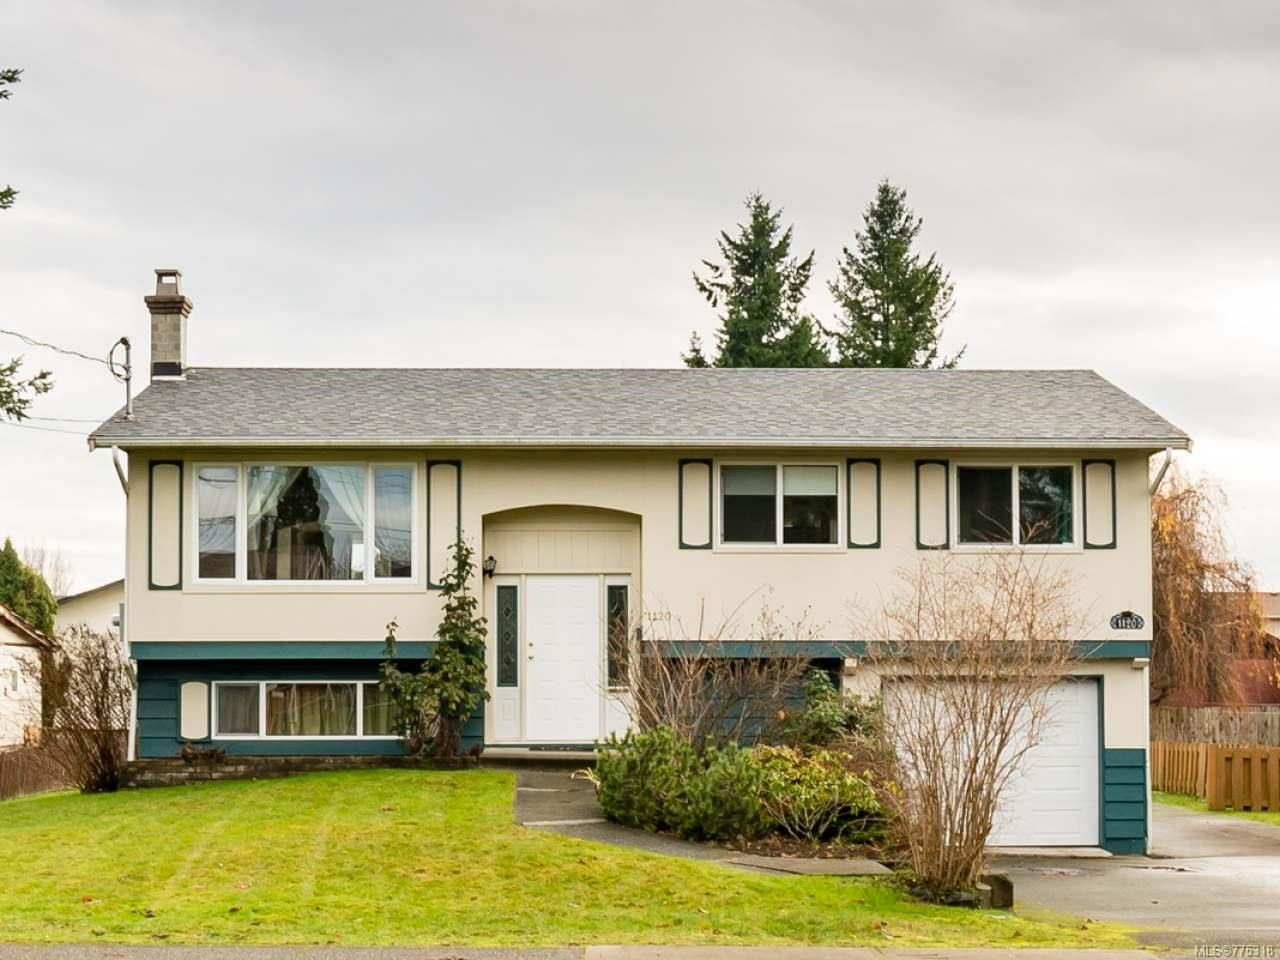 Main Photo: 1120 21ST STREET in COURTENAY: CV Courtenay City House for sale (Comox Valley)  : MLS®# 775318